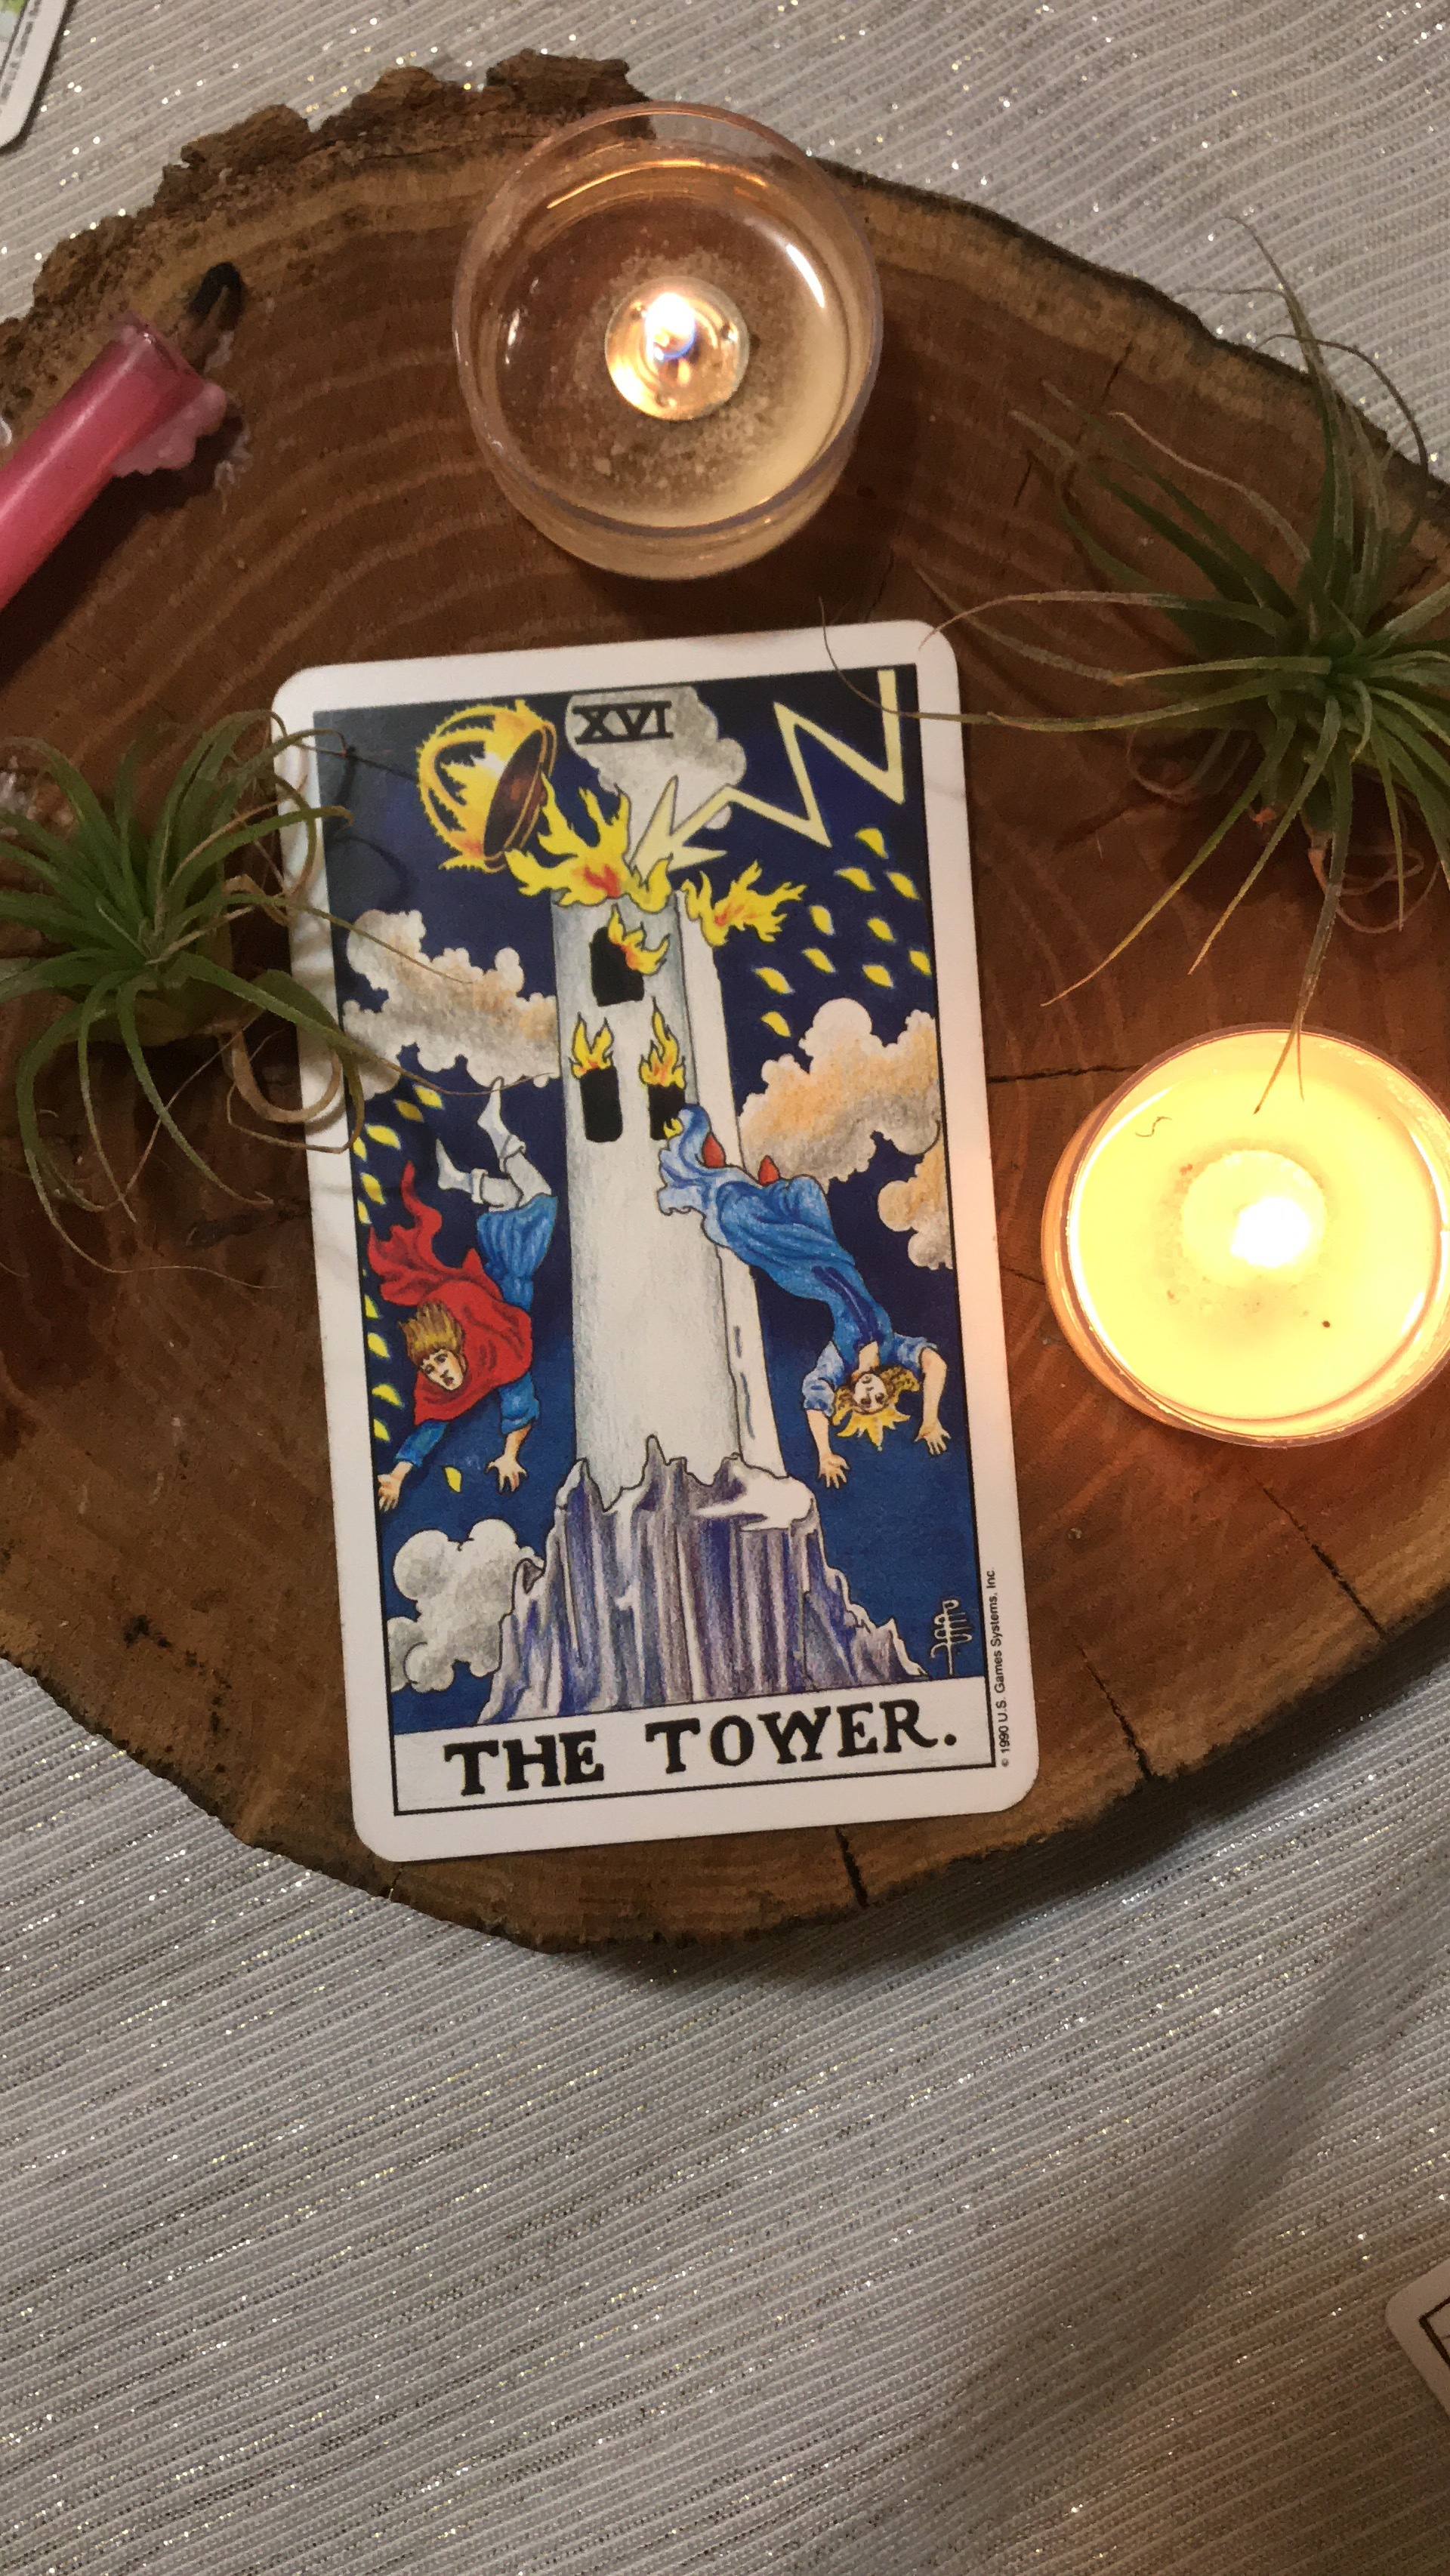 Crown Chakra from The Little Sage Oracle Deck and The Tower from Rider Waite Smith